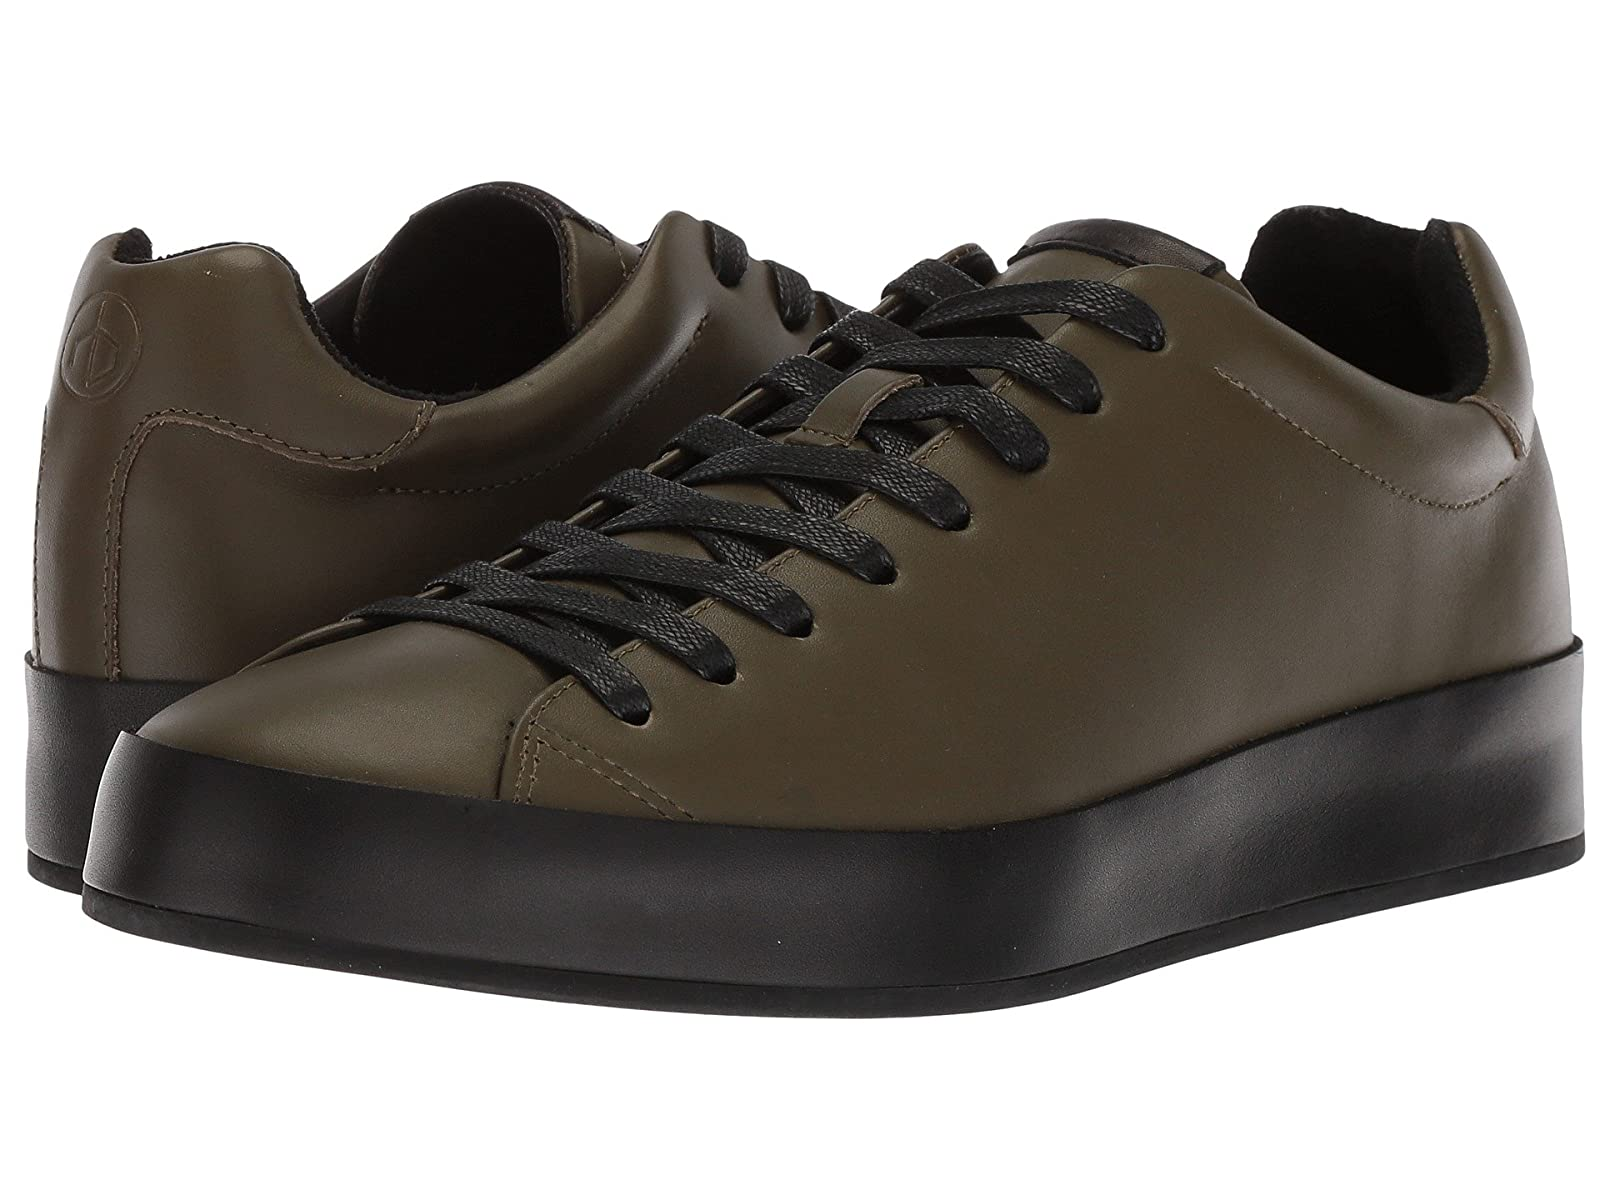 rag & bone RB1 Low Top SneakersCheap and distinctive eye-catching shoes